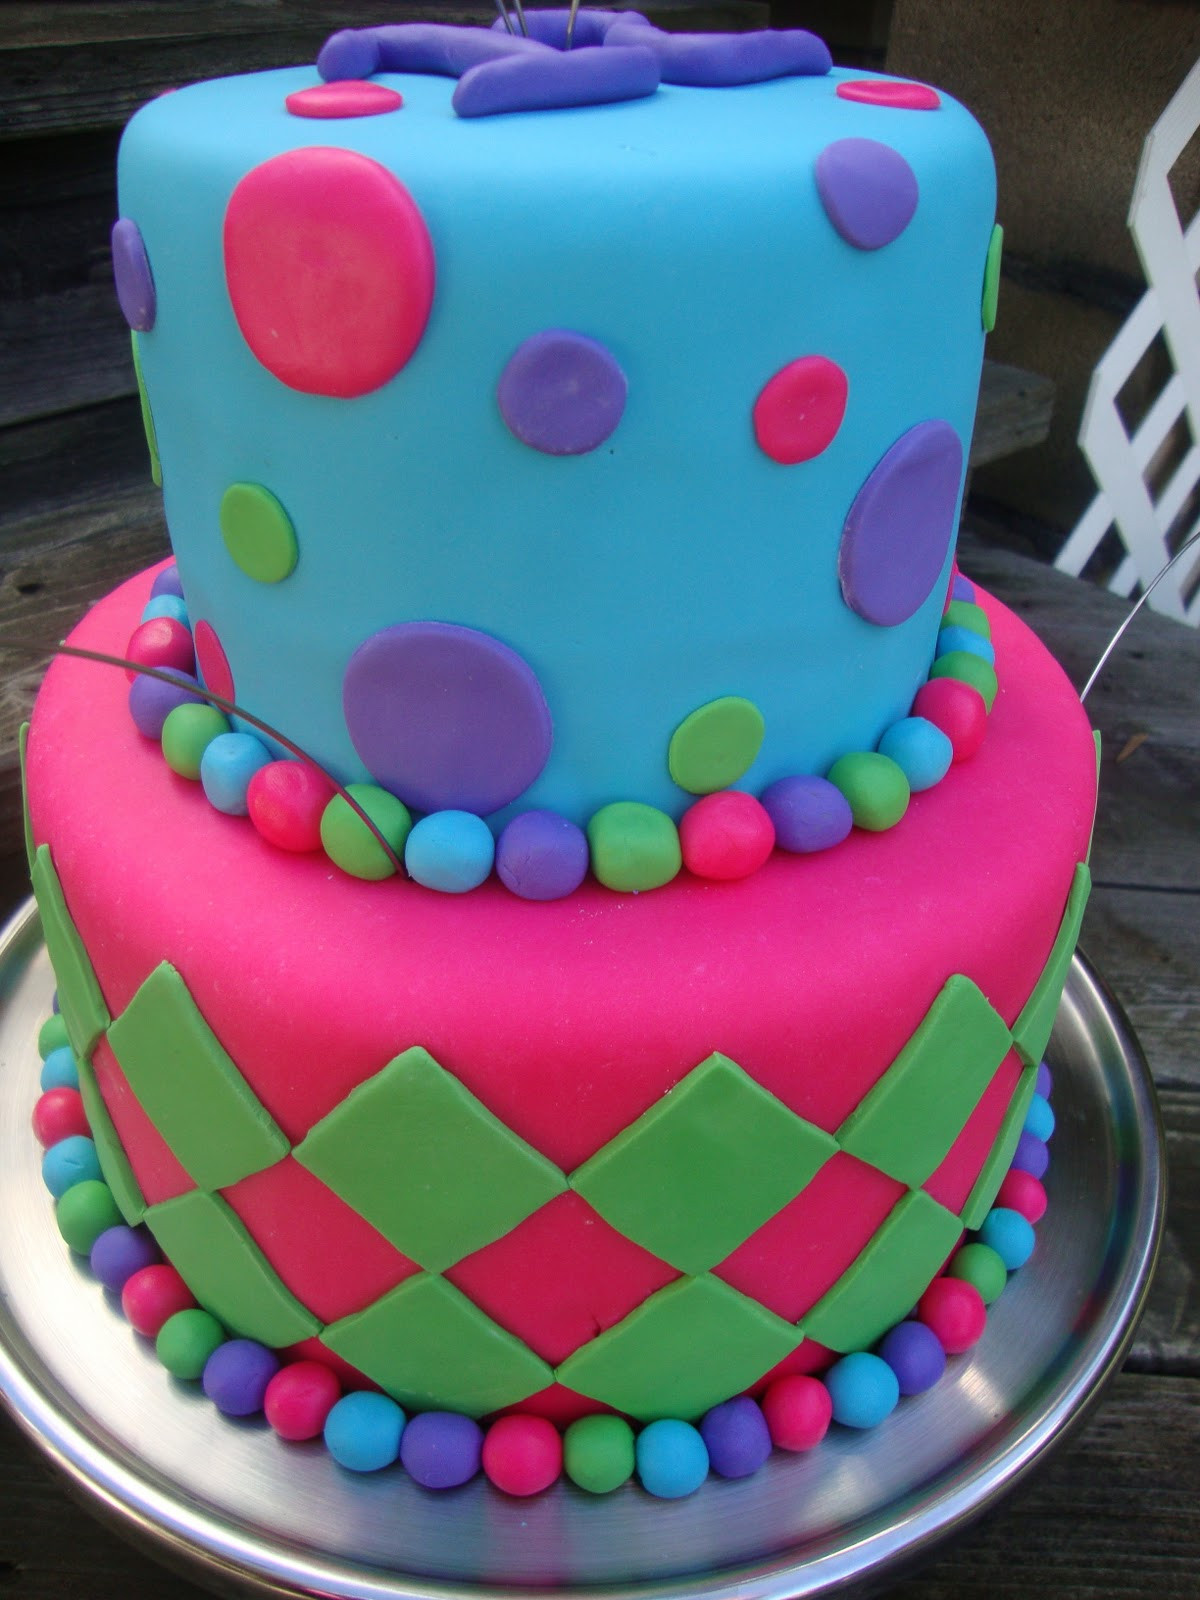 Best ideas about Birthday Cake For 12 Years Old Girl . Save or Pin Caramel Cup 12th Birthday Cake Now.